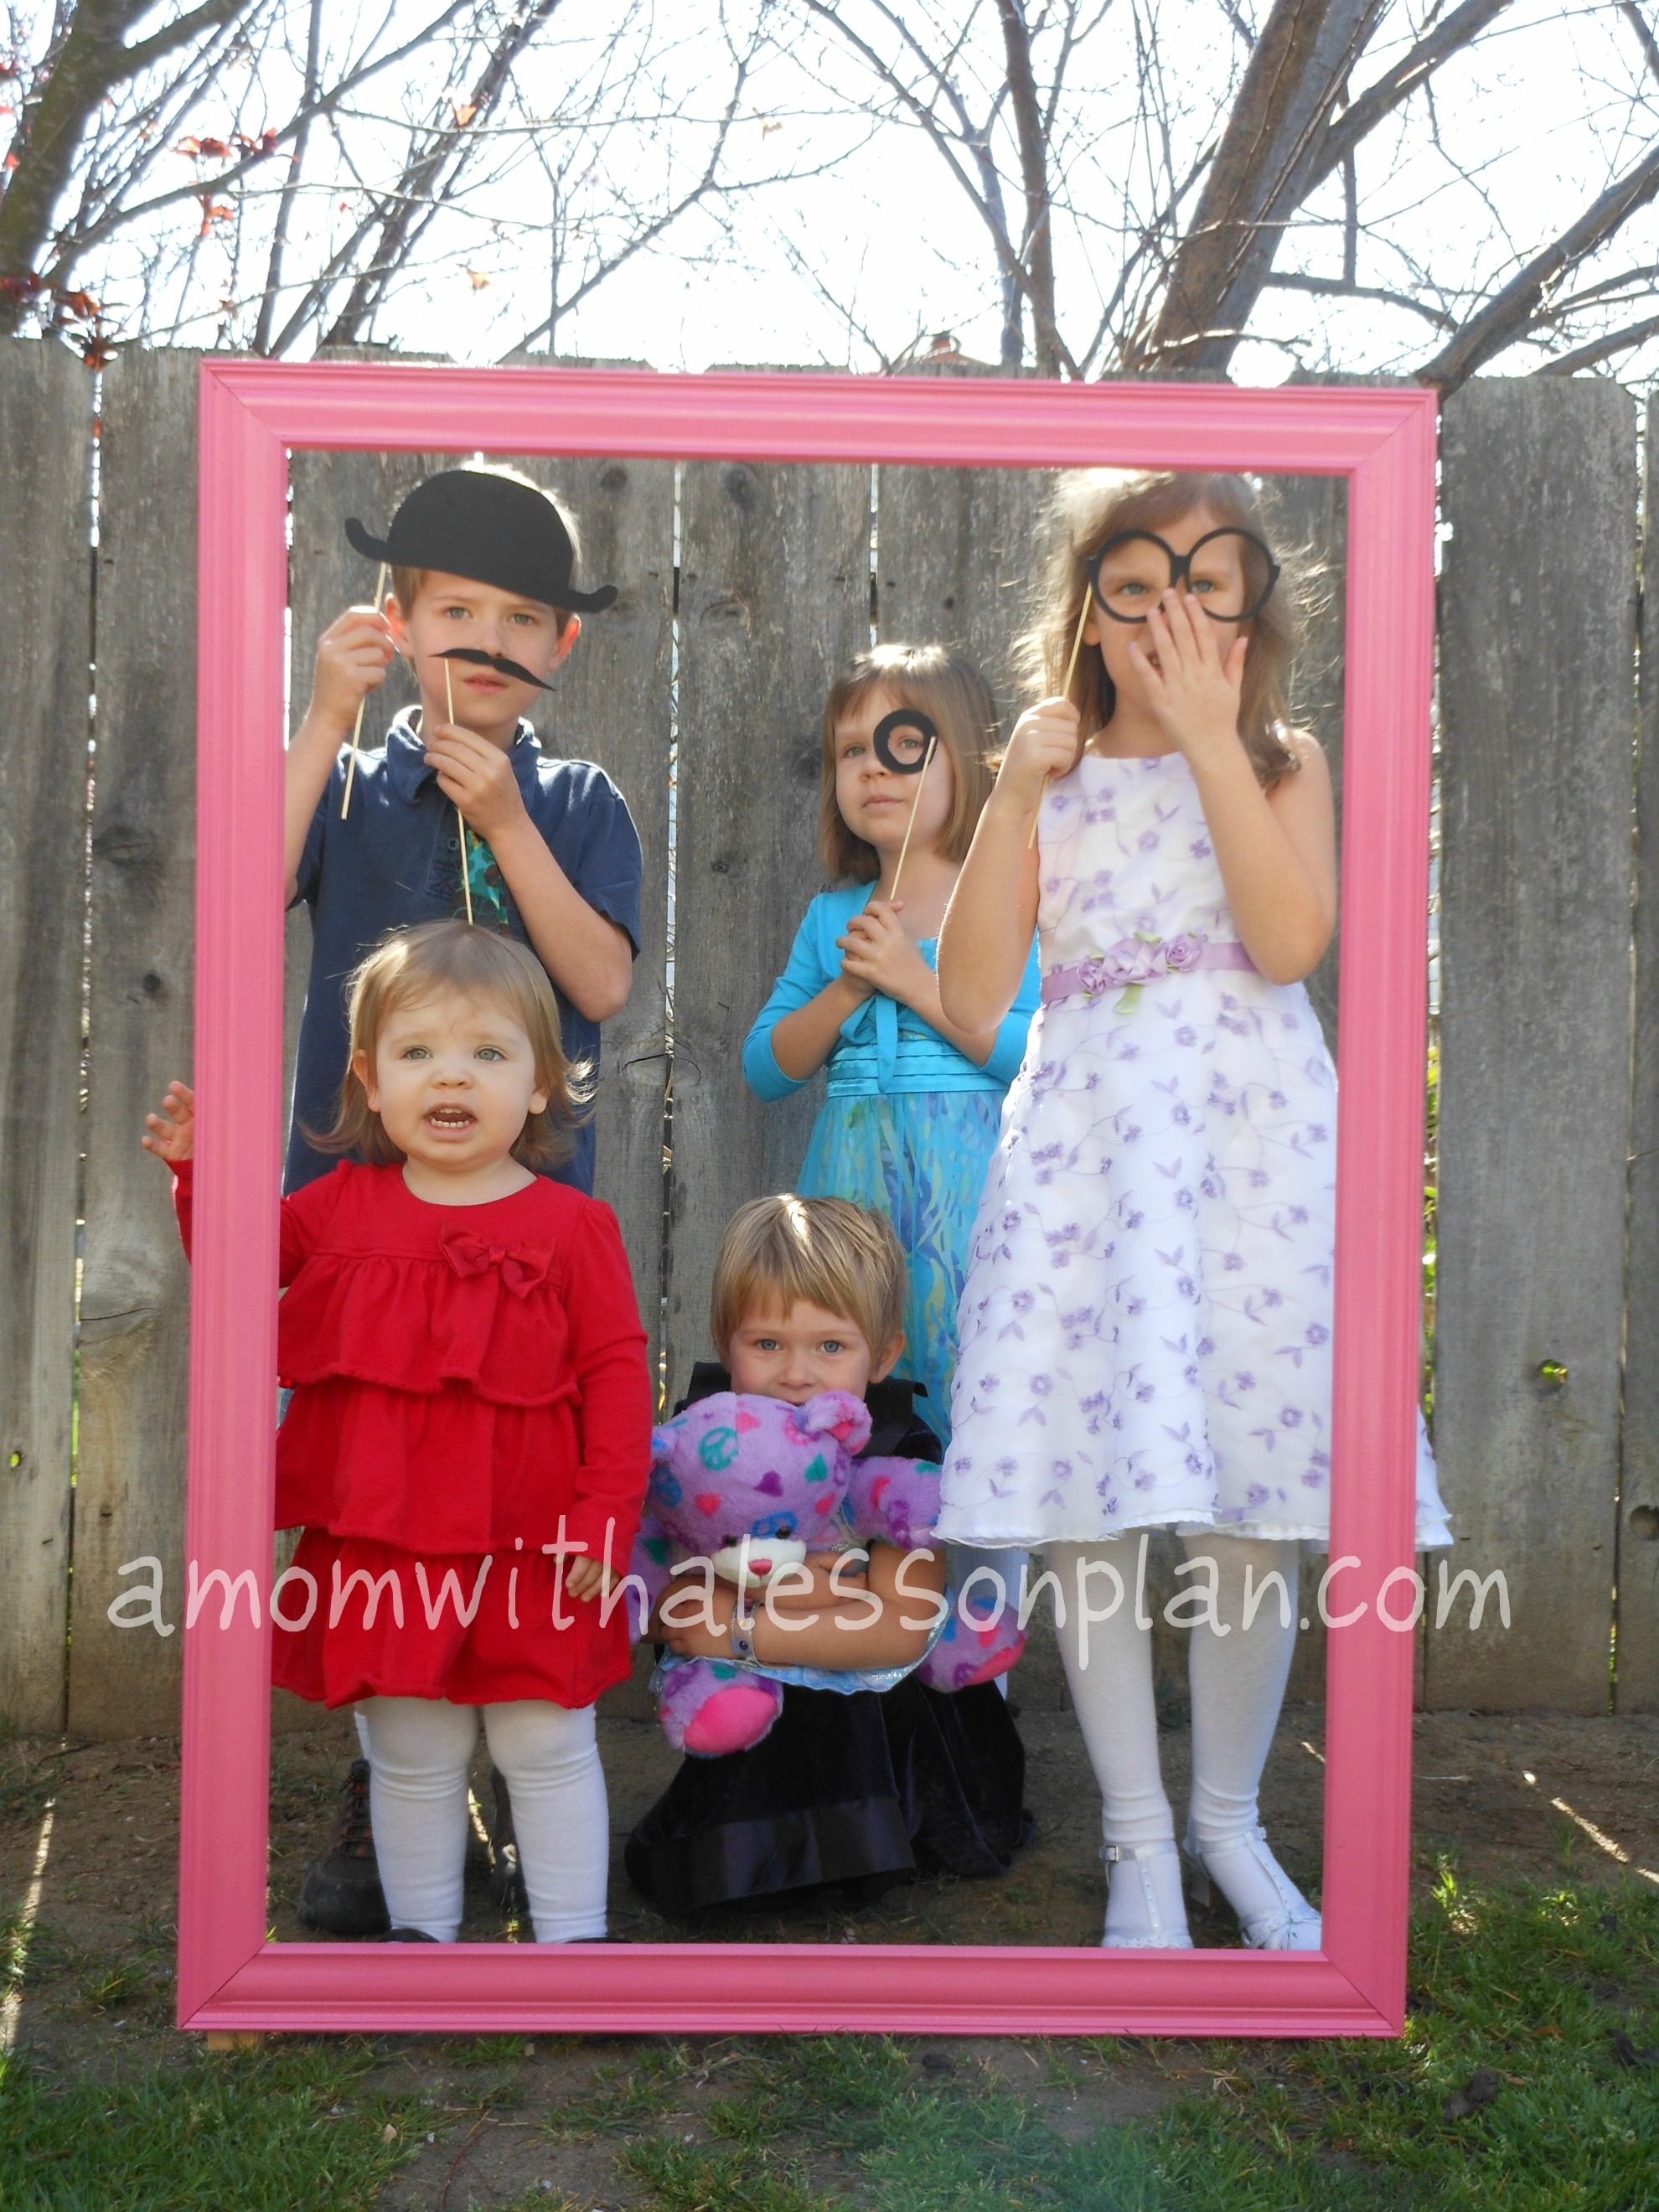 big picture frames for parties kjpwg com